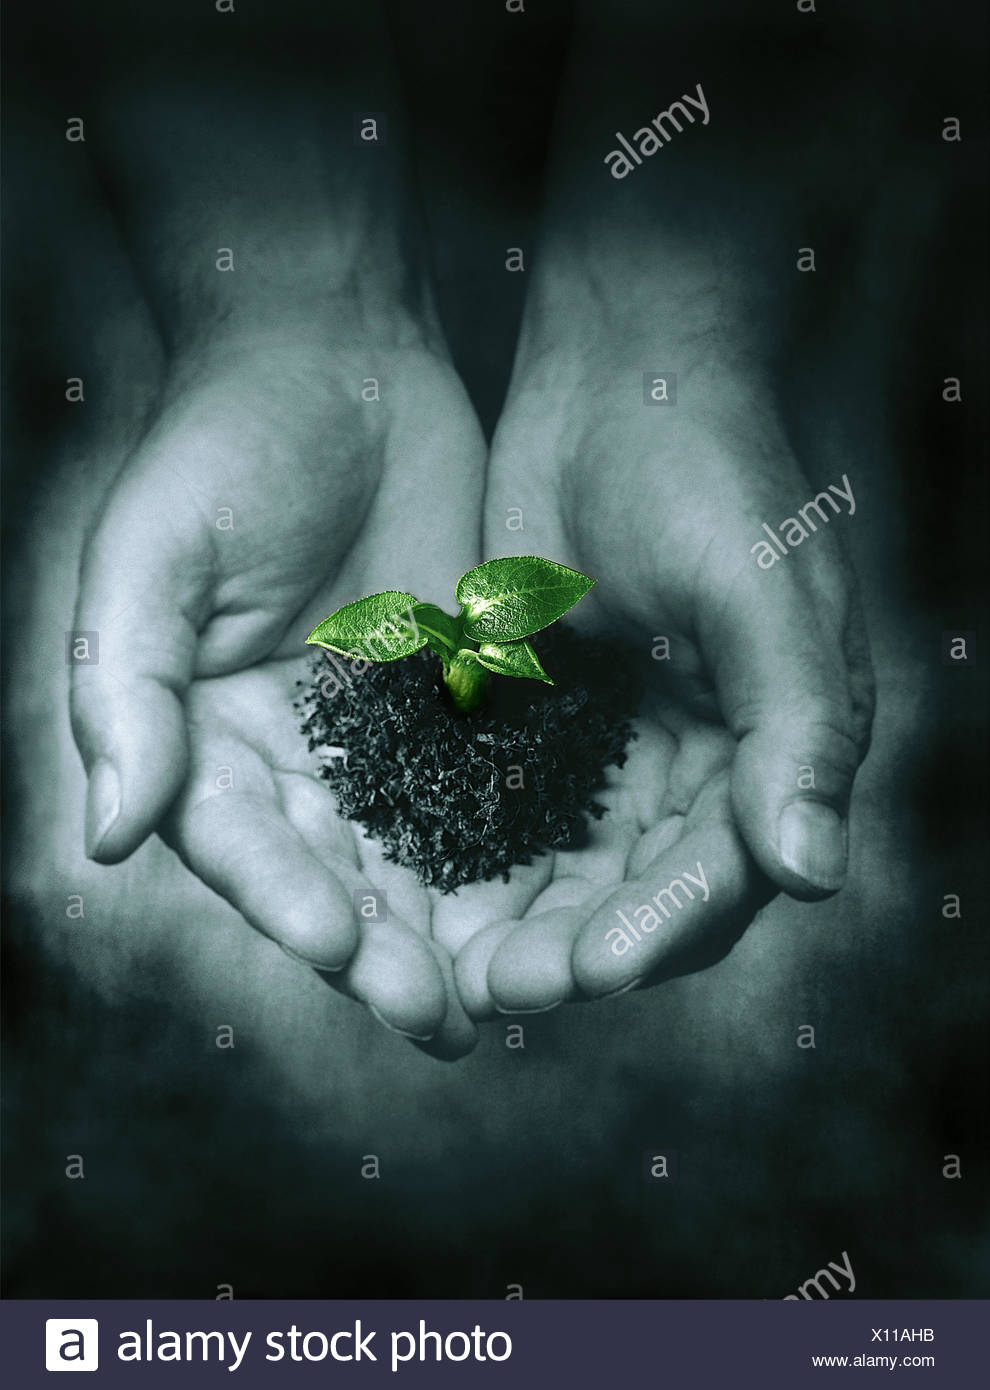 Seedling In Palm Of A Person'S Hands - Stock Image